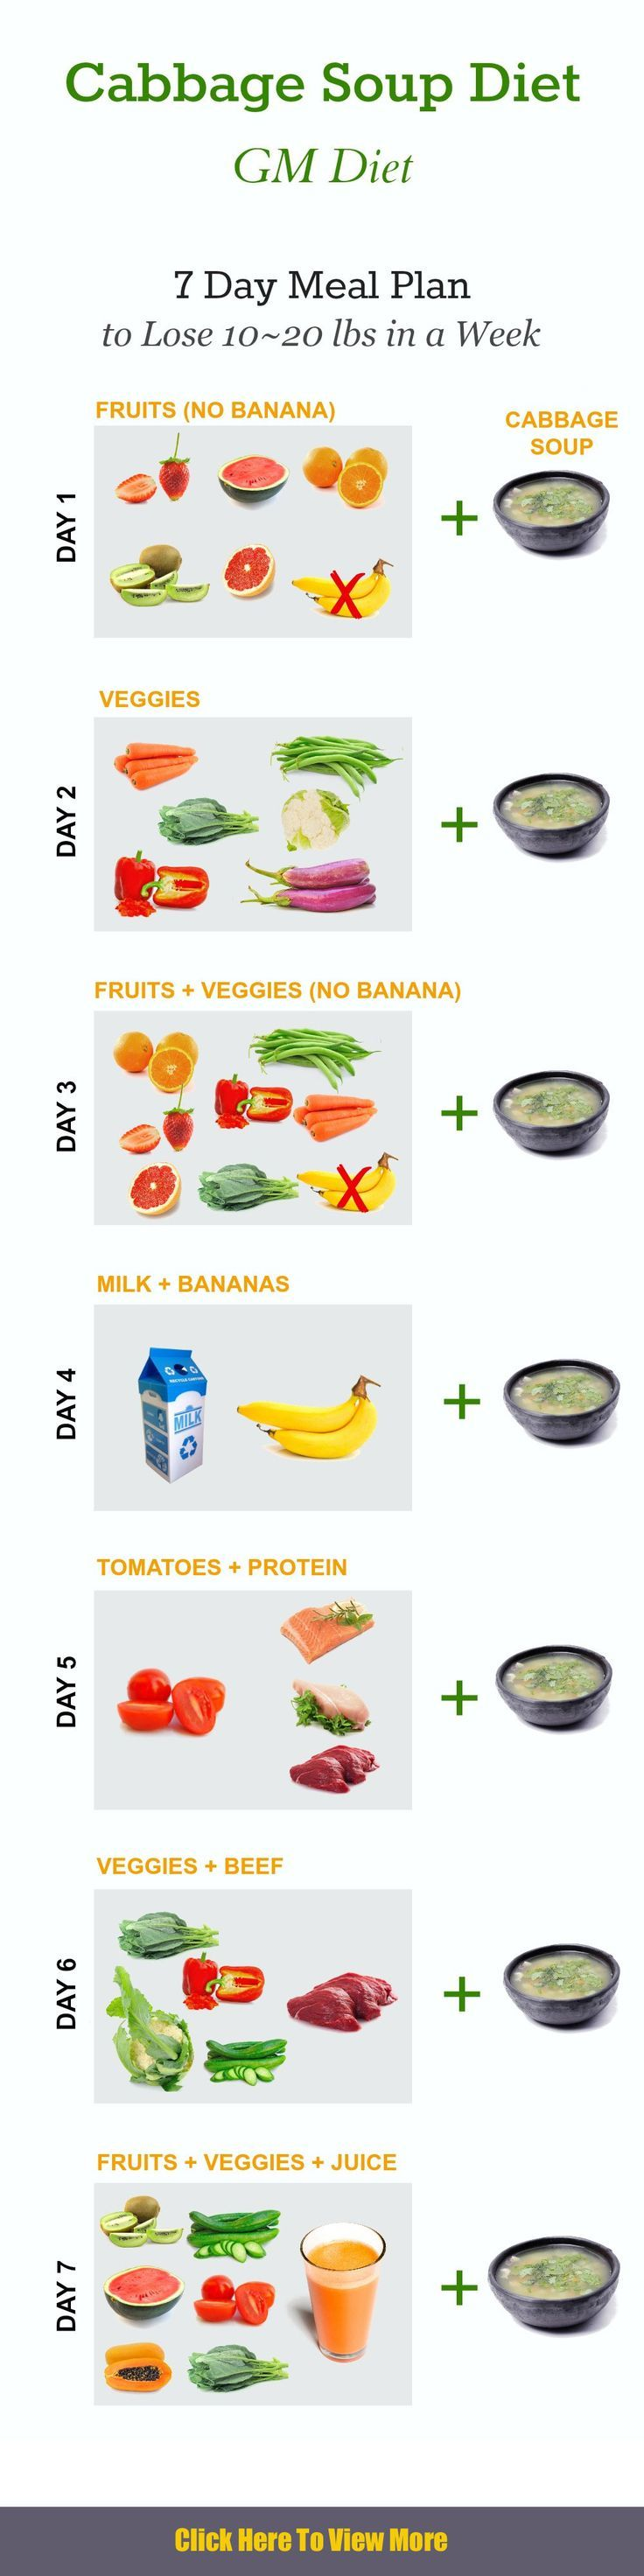 See more here ► https://www.youtube.com/watch?v=xctKmmiYuKo Tags: how 2 lose weight in 1 week, fast weight loss in 2 weeks,  - 7-Day GM Cabbage Soup Diet Plan to Lose 10-20 Pounds in a Week